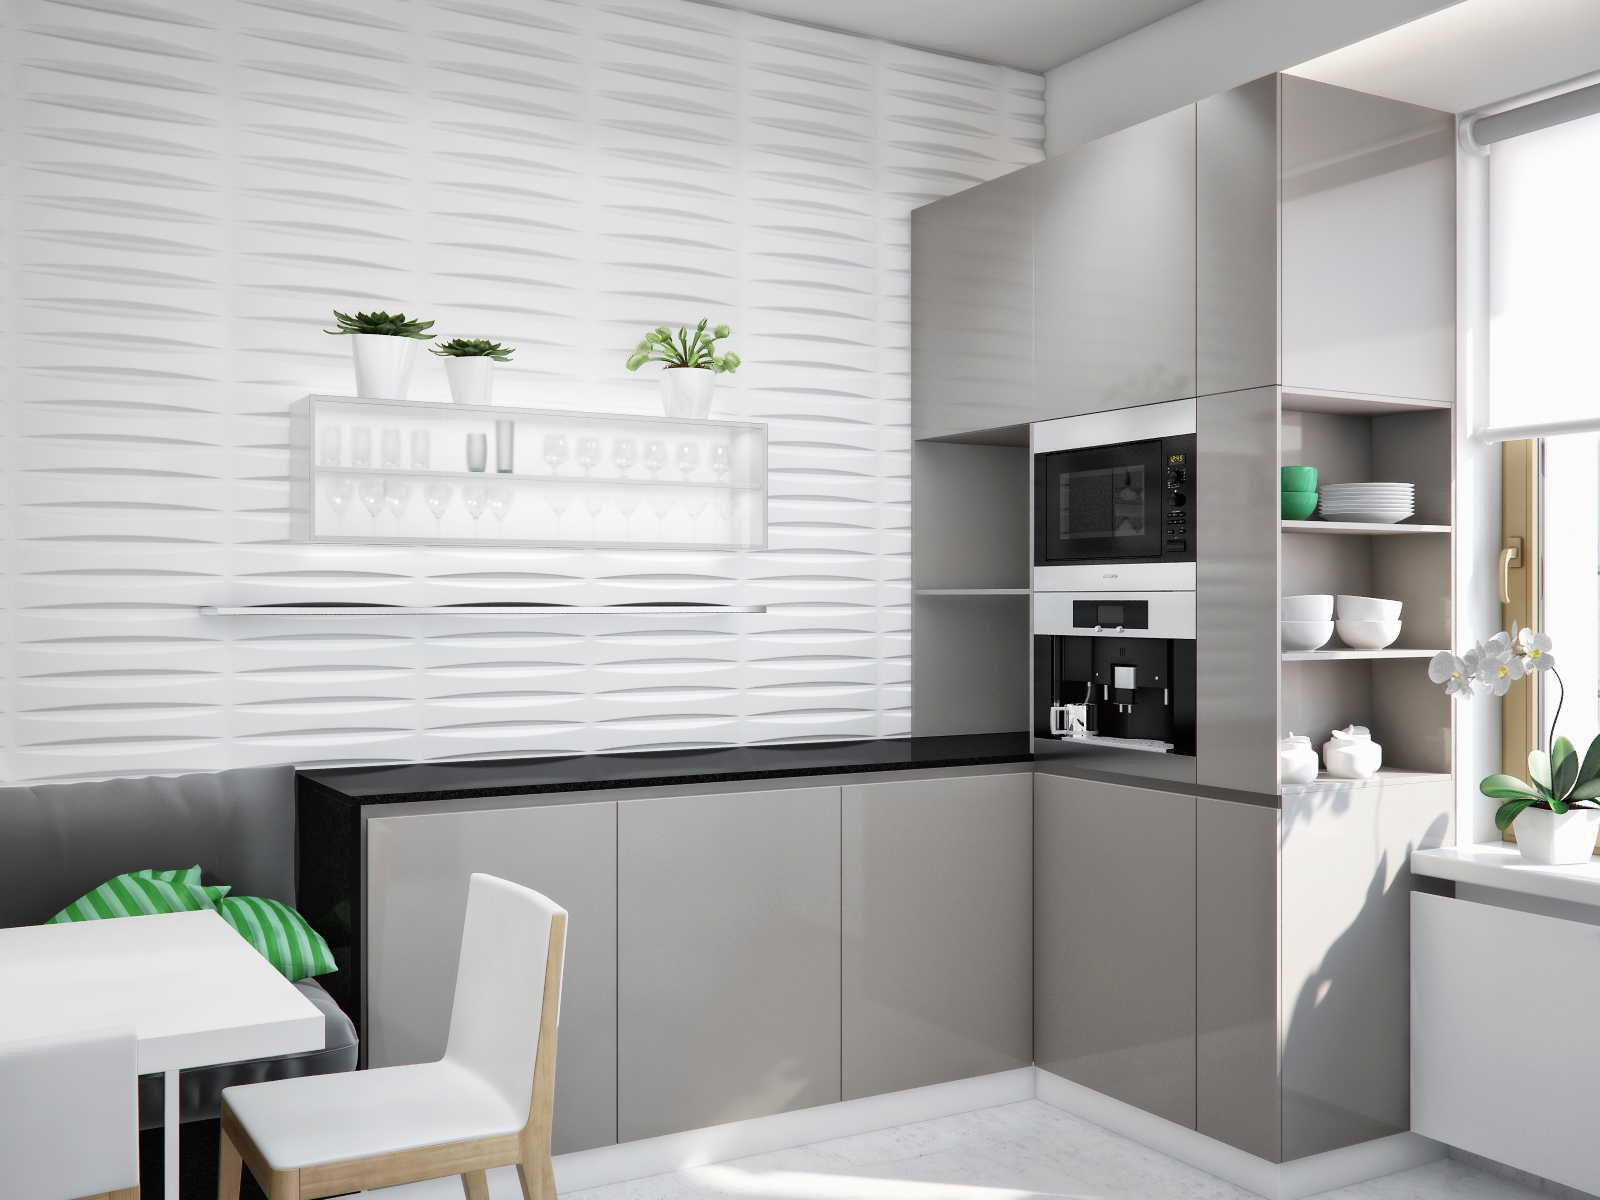 White kitchen gray units black worktop interior design for Grey kitchen wall units